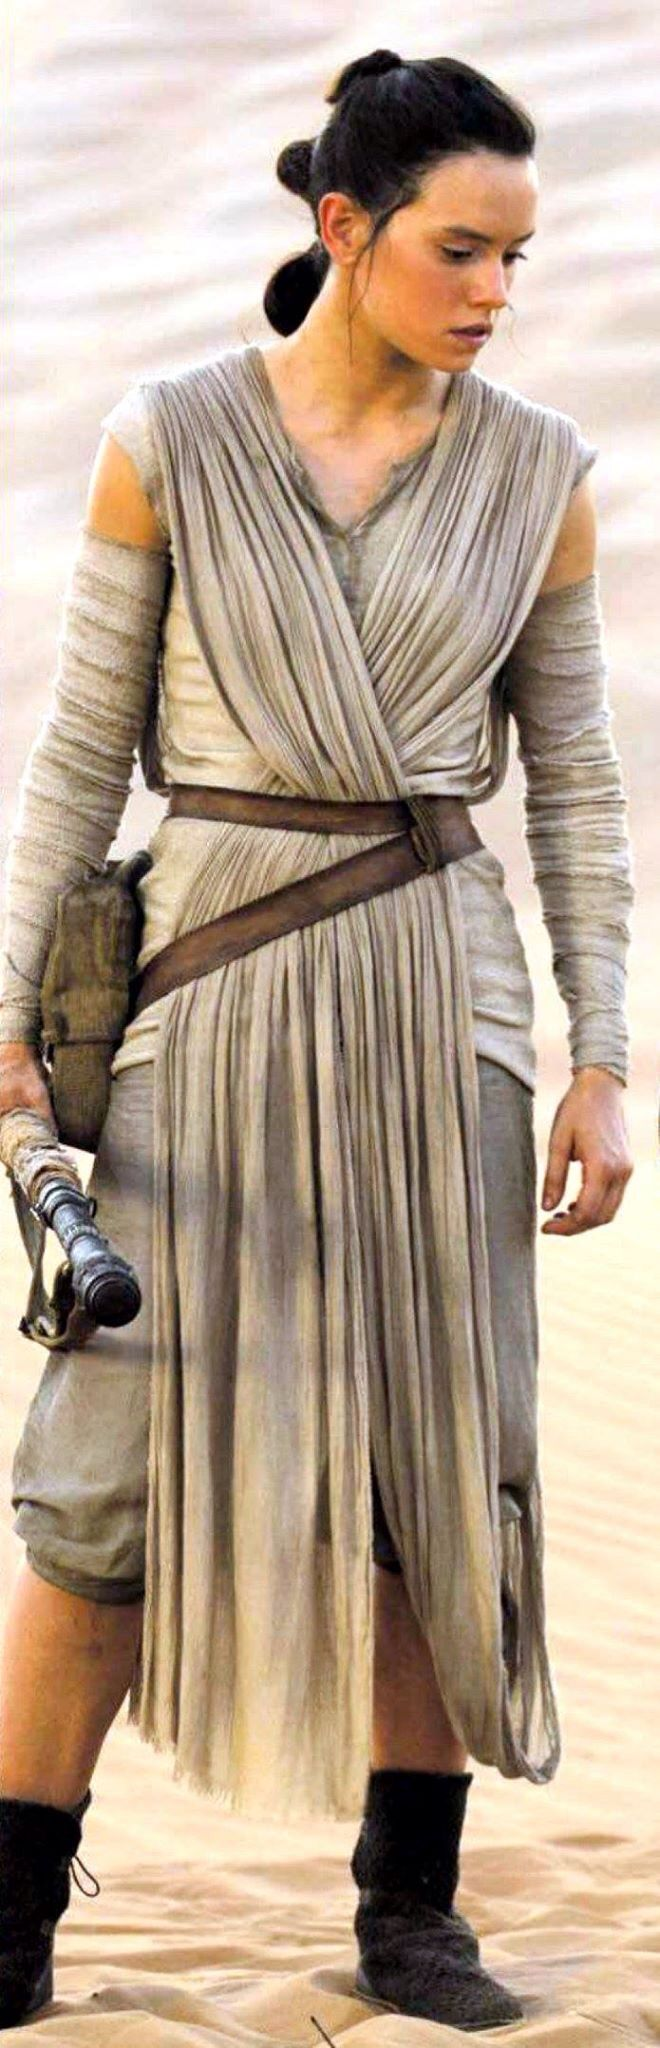 Star Wars VII - The Force Awakens / Rey Note Daisy Ridley is not wearing the leather strap on her left wrist